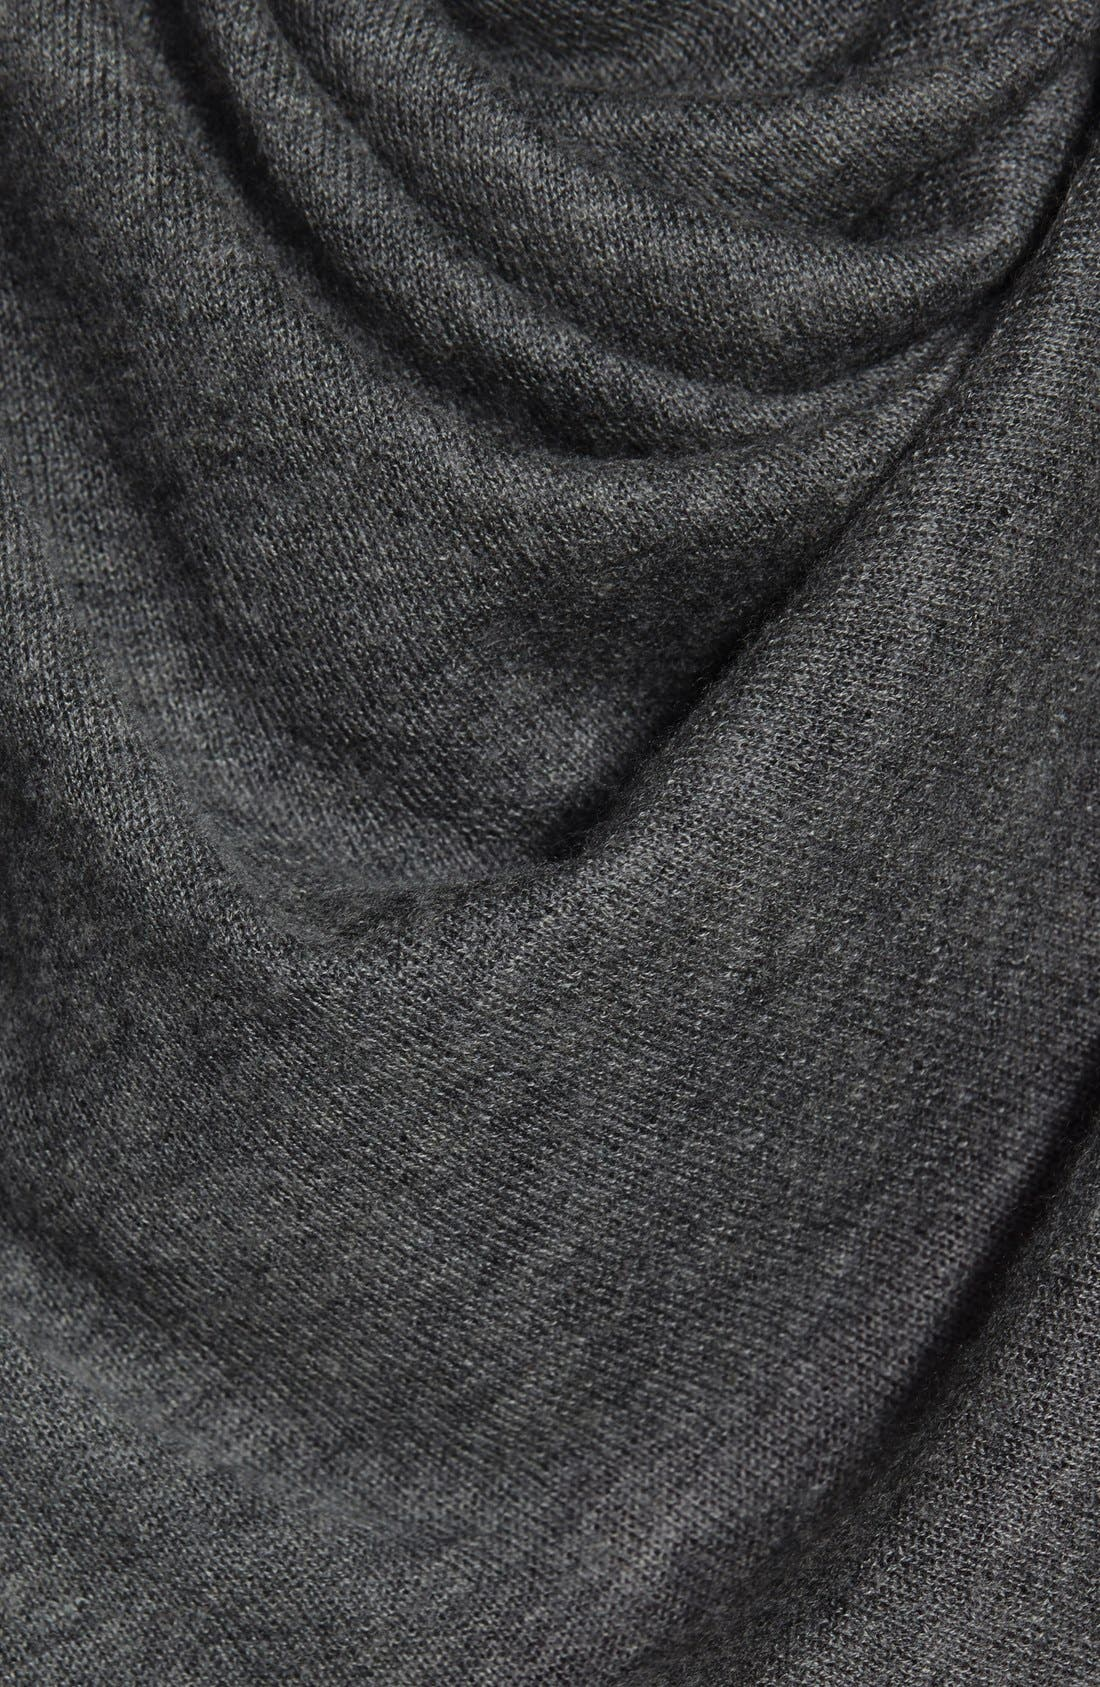 Oversize Cashmere Scarf,                             Alternate thumbnail 2, color,                             Heather Charcoal